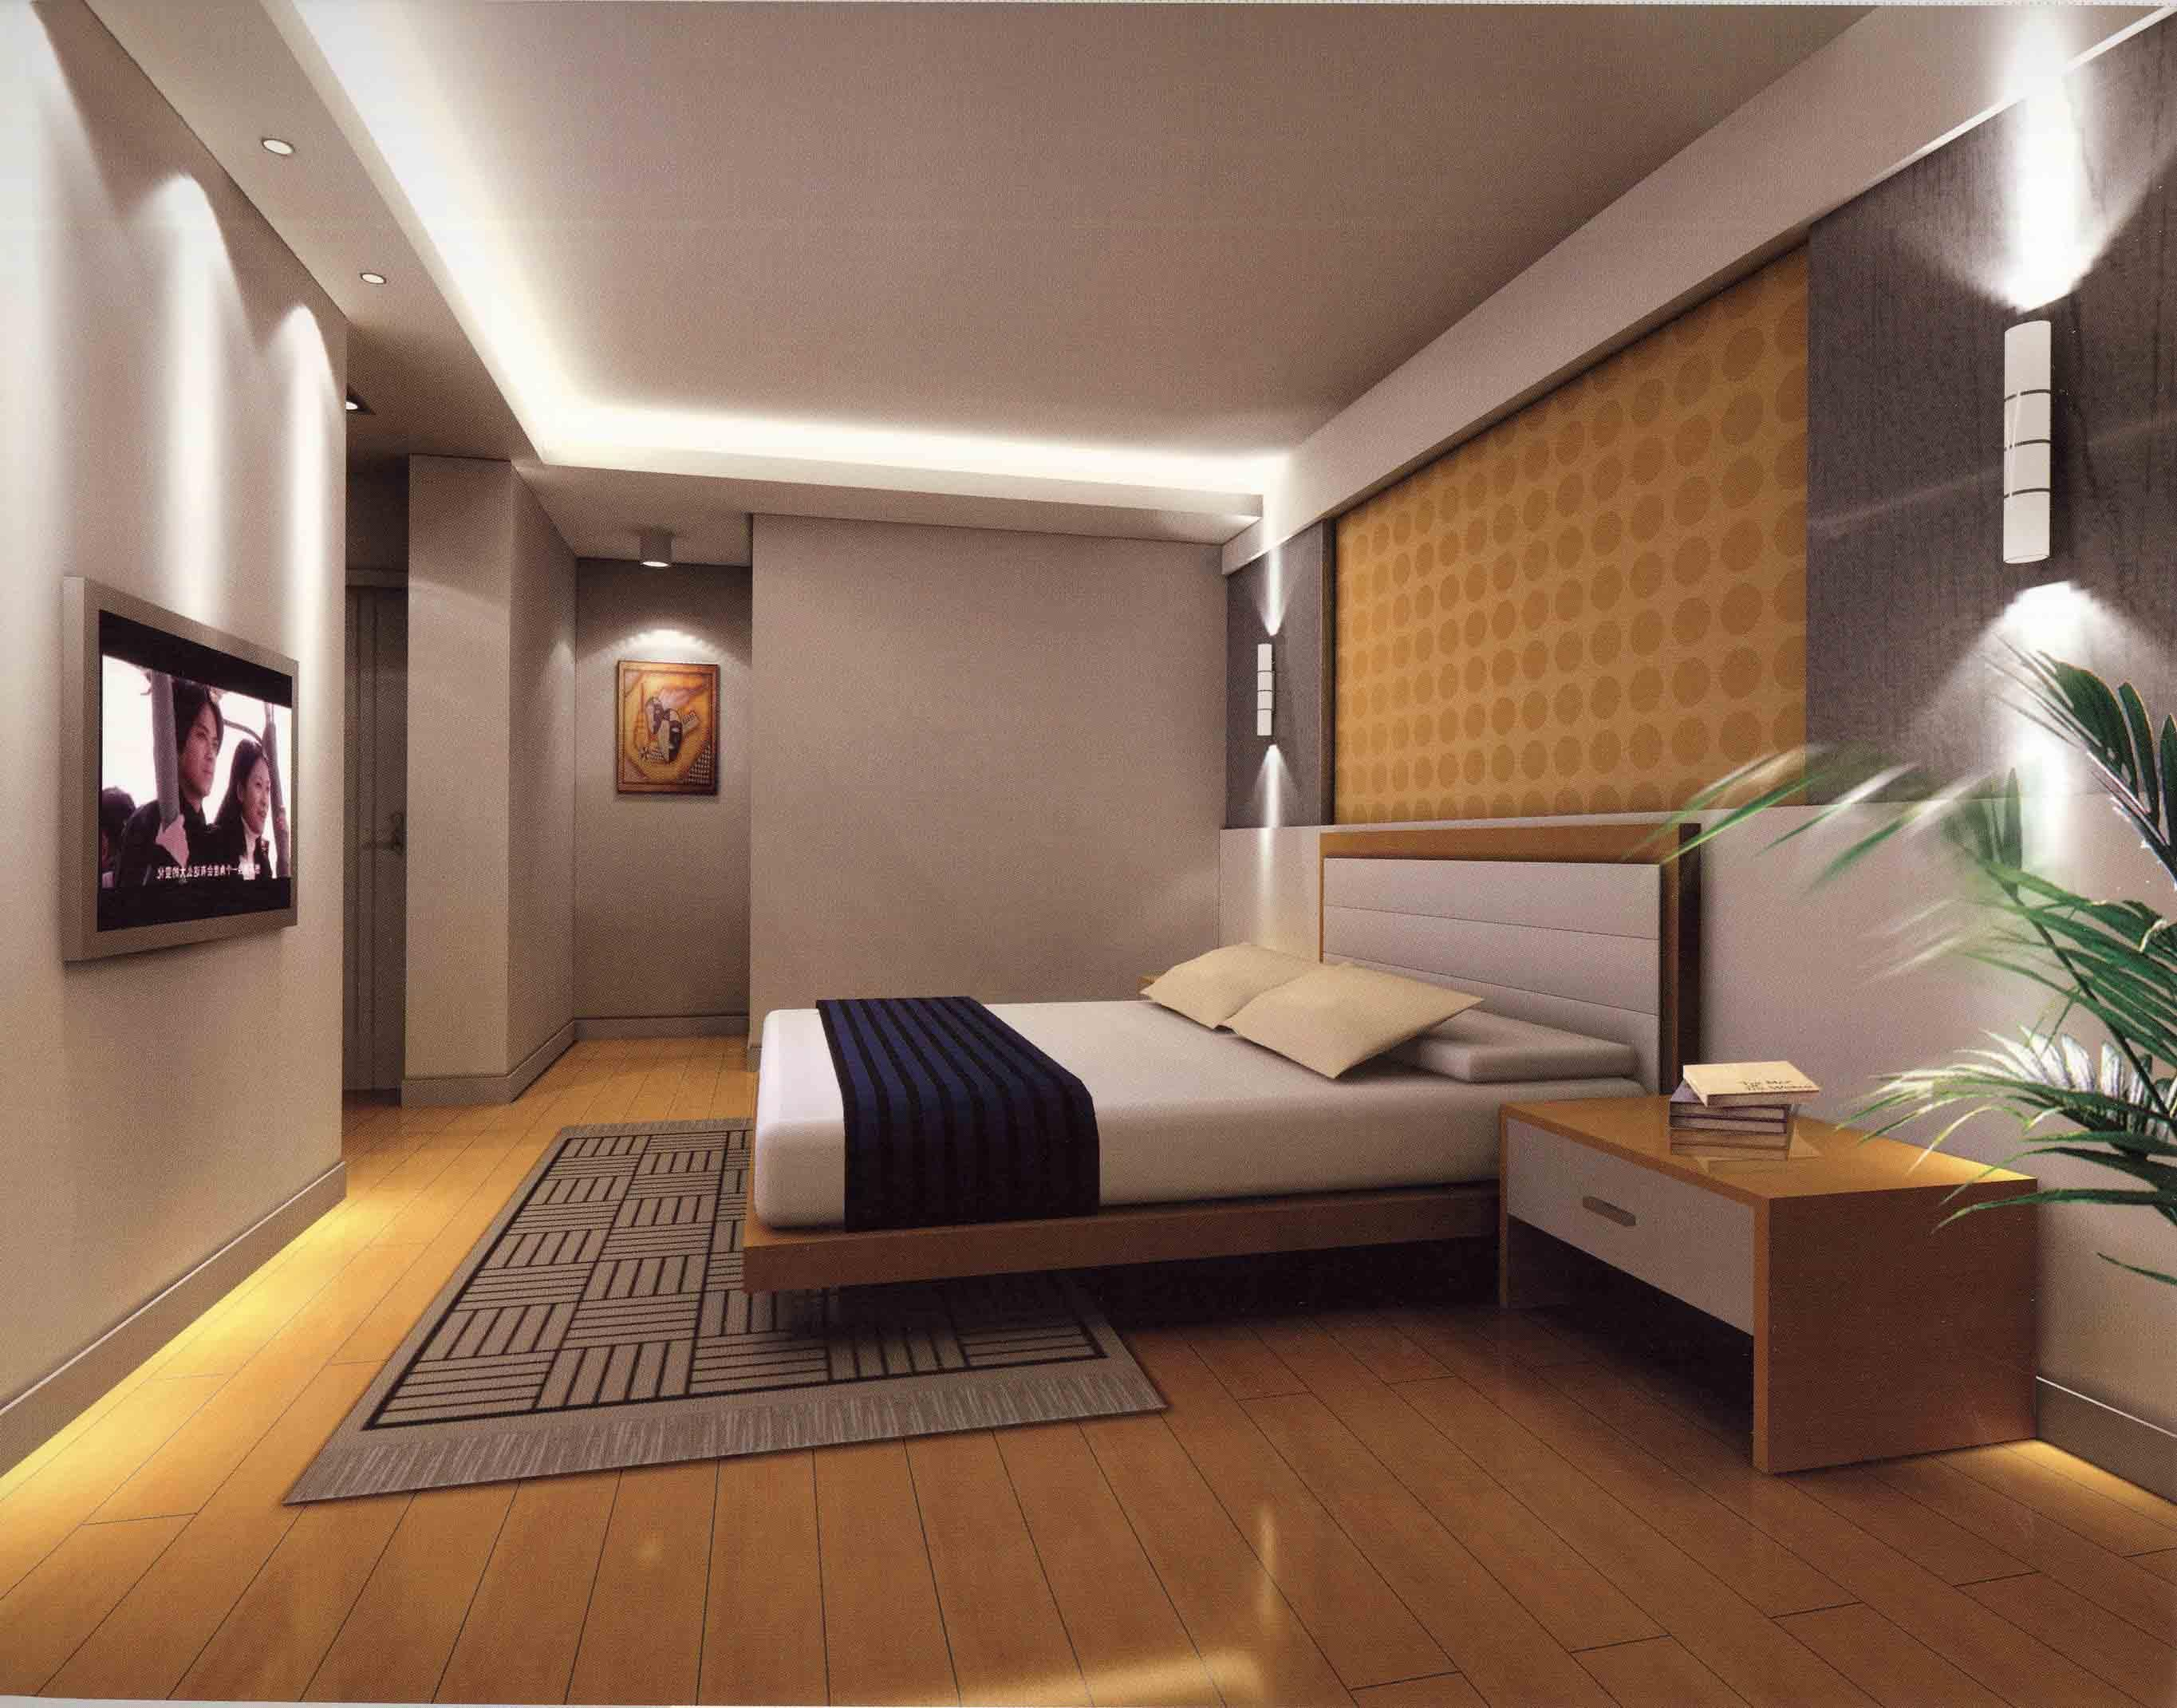 master bedroom design ideas | home design ideas